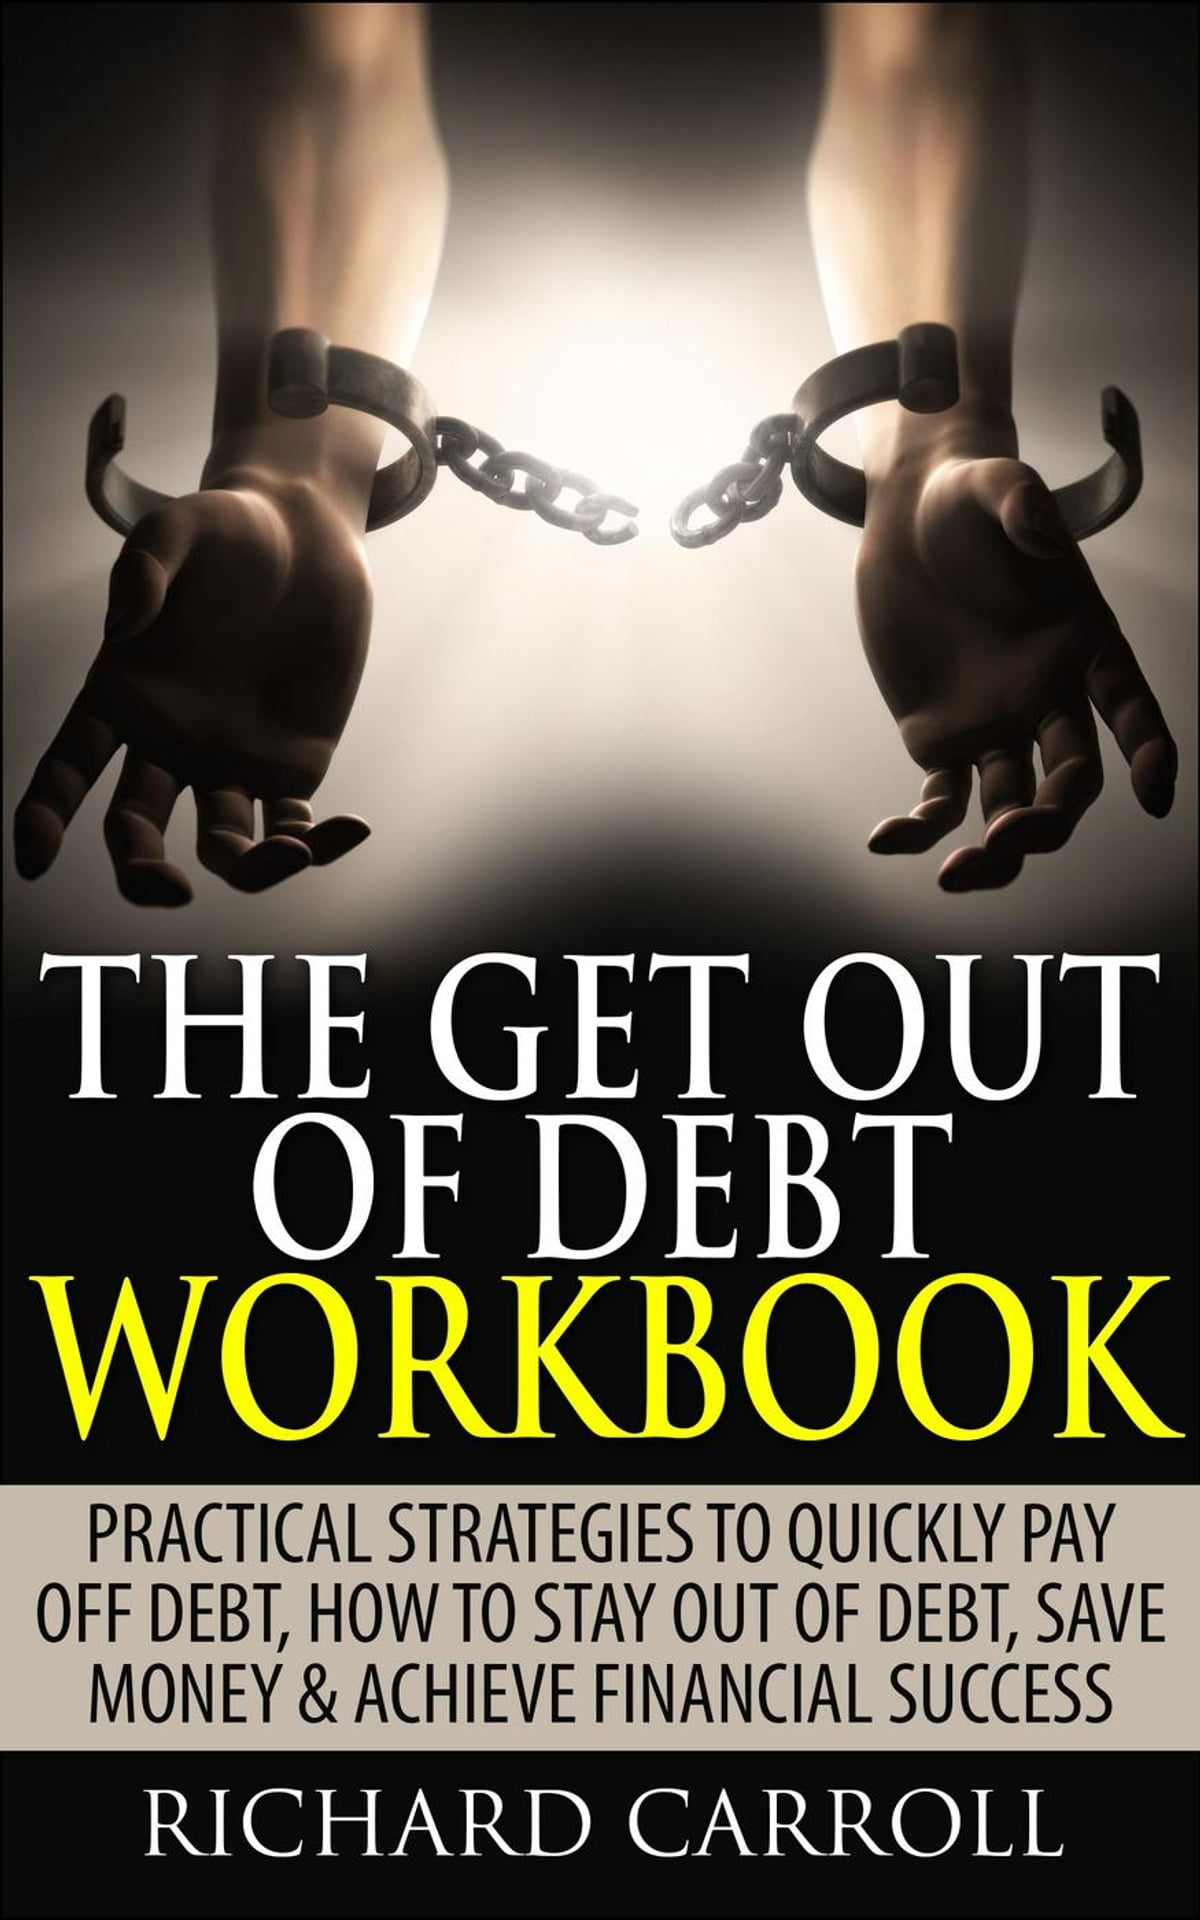 Workbooks success principles workbook : The Get Out Of Debt Workbook: Practical Strategies To Quickly Pay ...